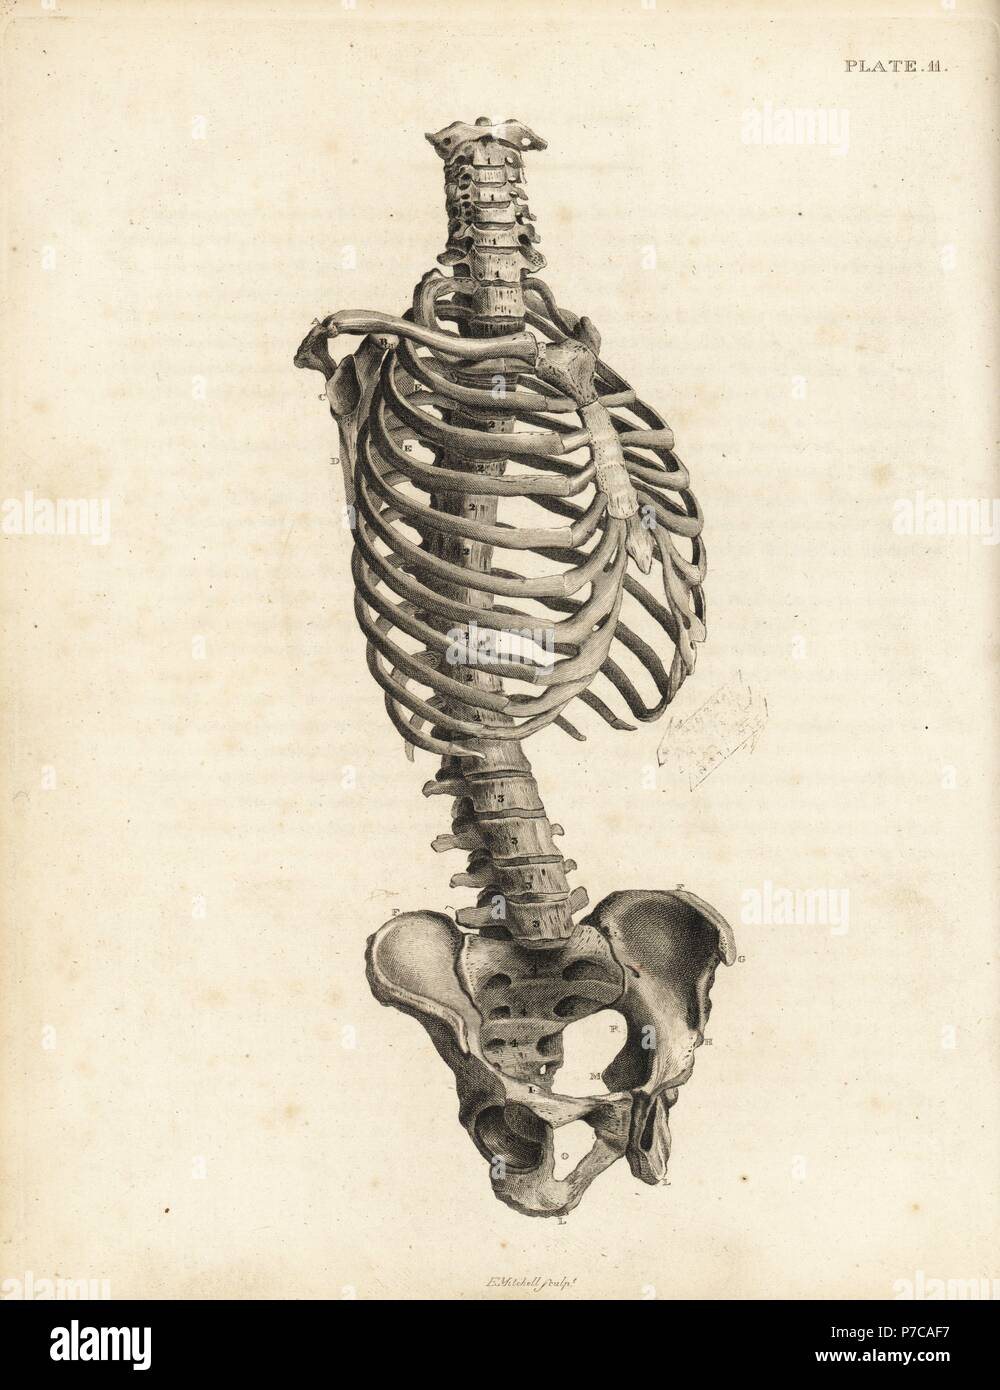 Front View Of The Human Trunk Skeleton Including Spine Ribs And